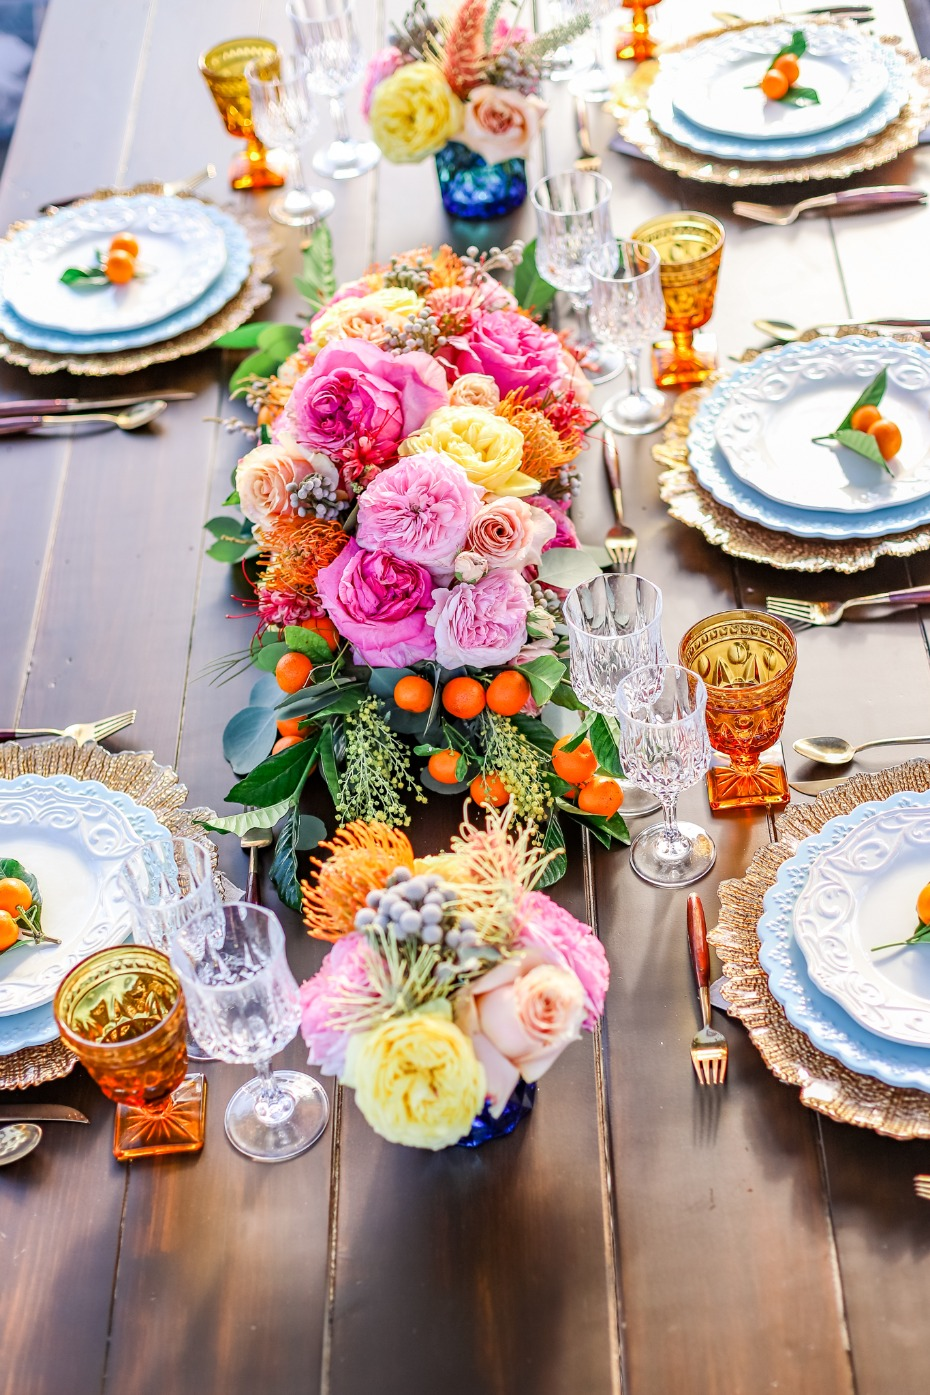 Fresh and bright table decor with local fruits